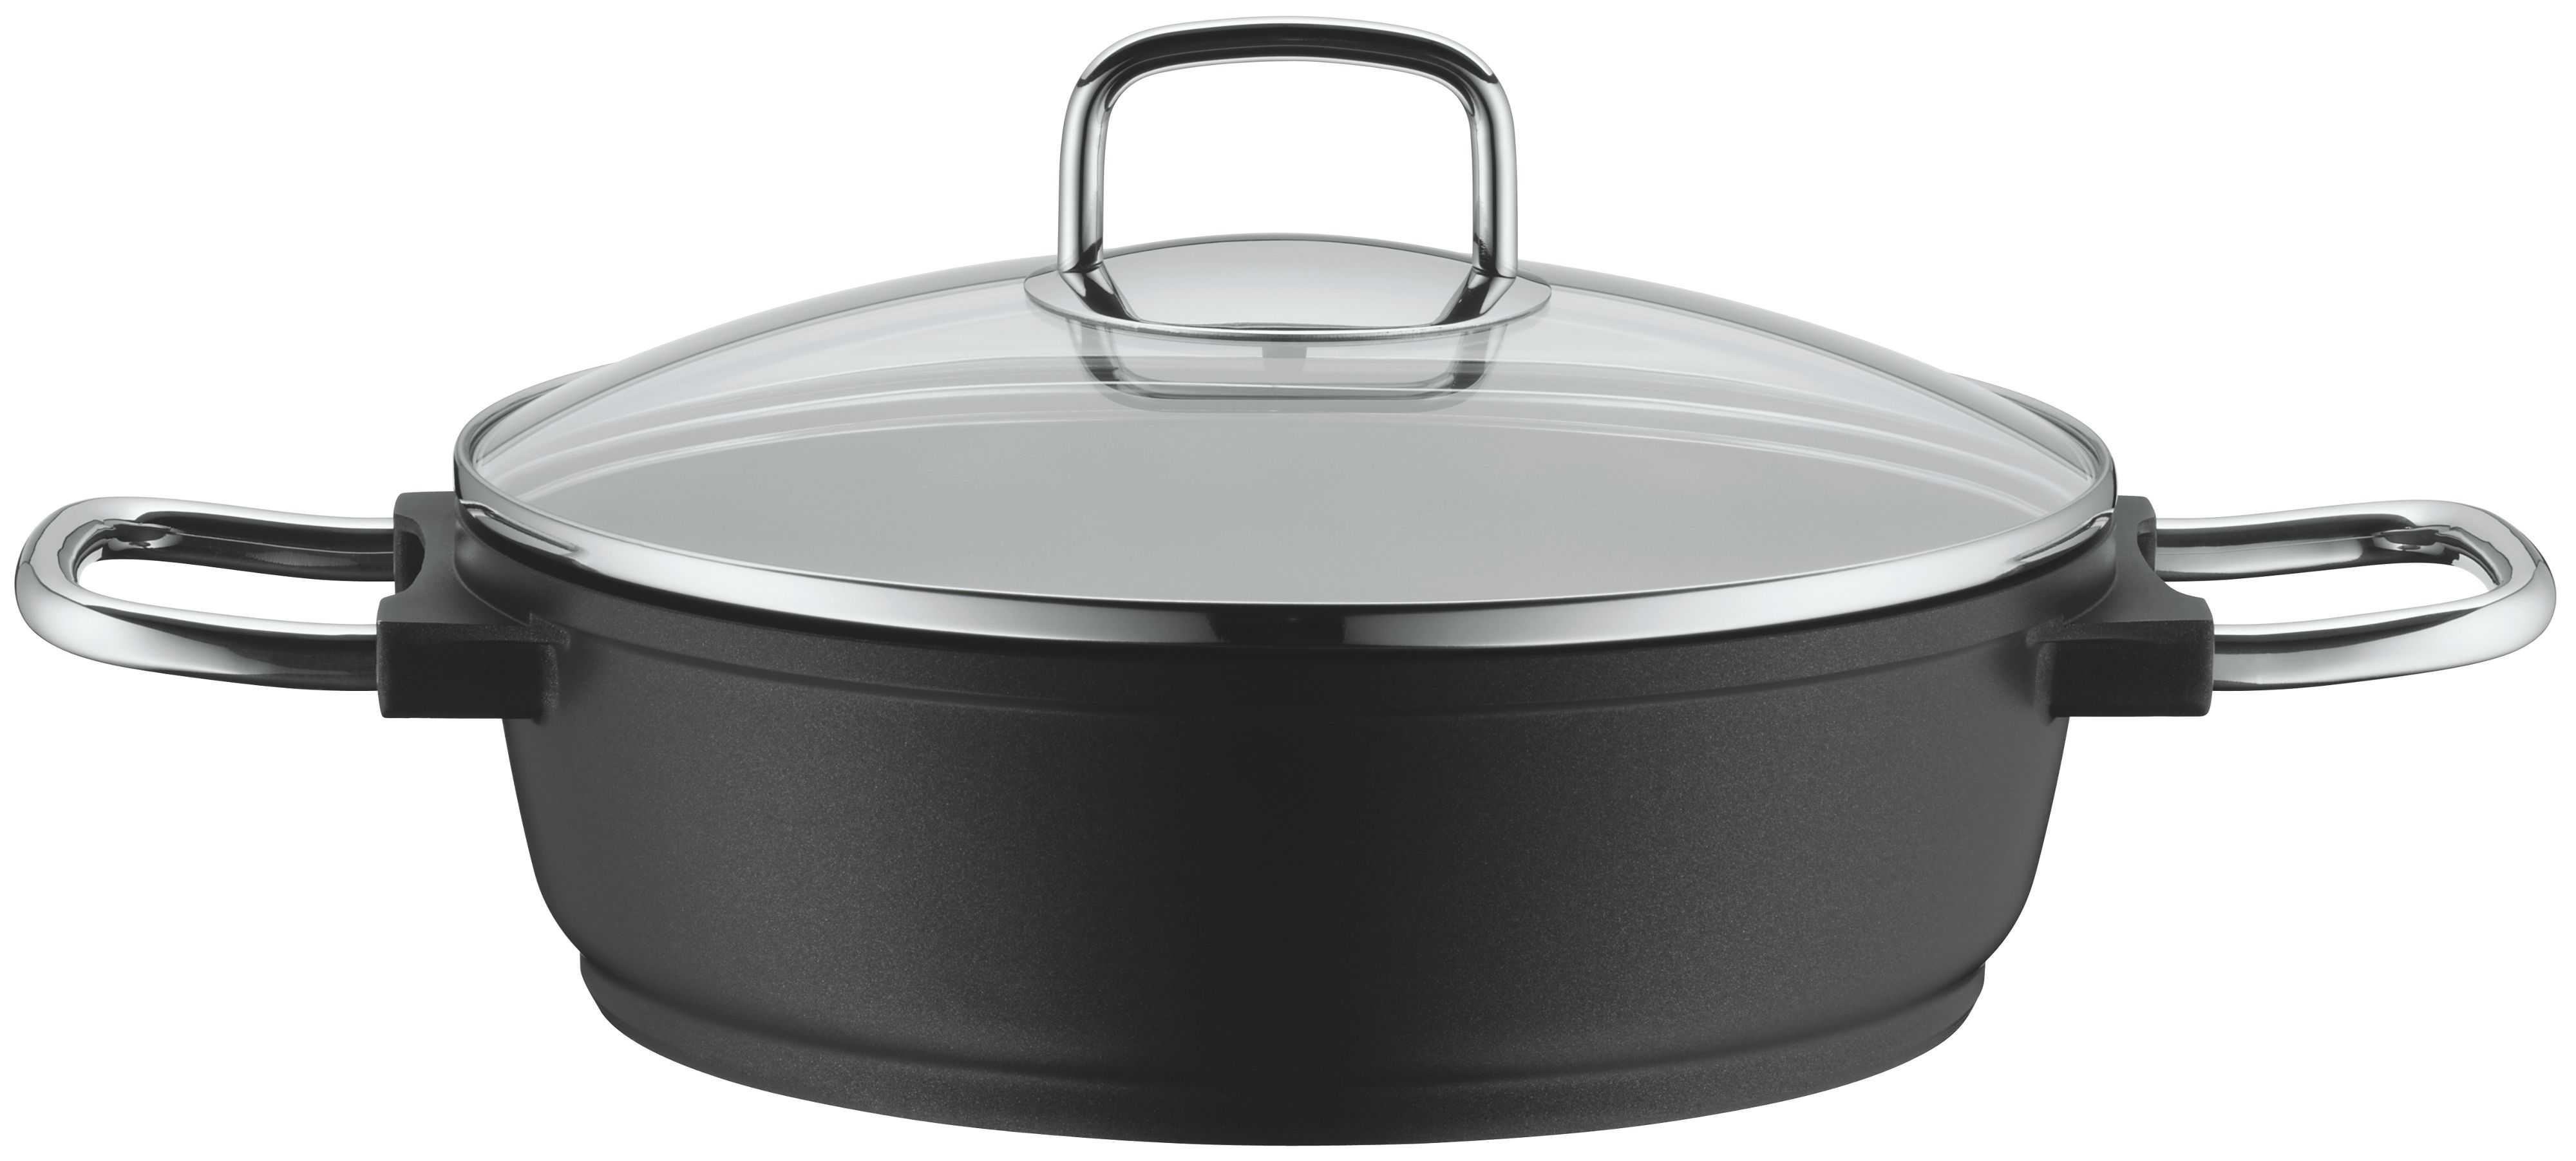 Bueno induction low casserole with glass lid